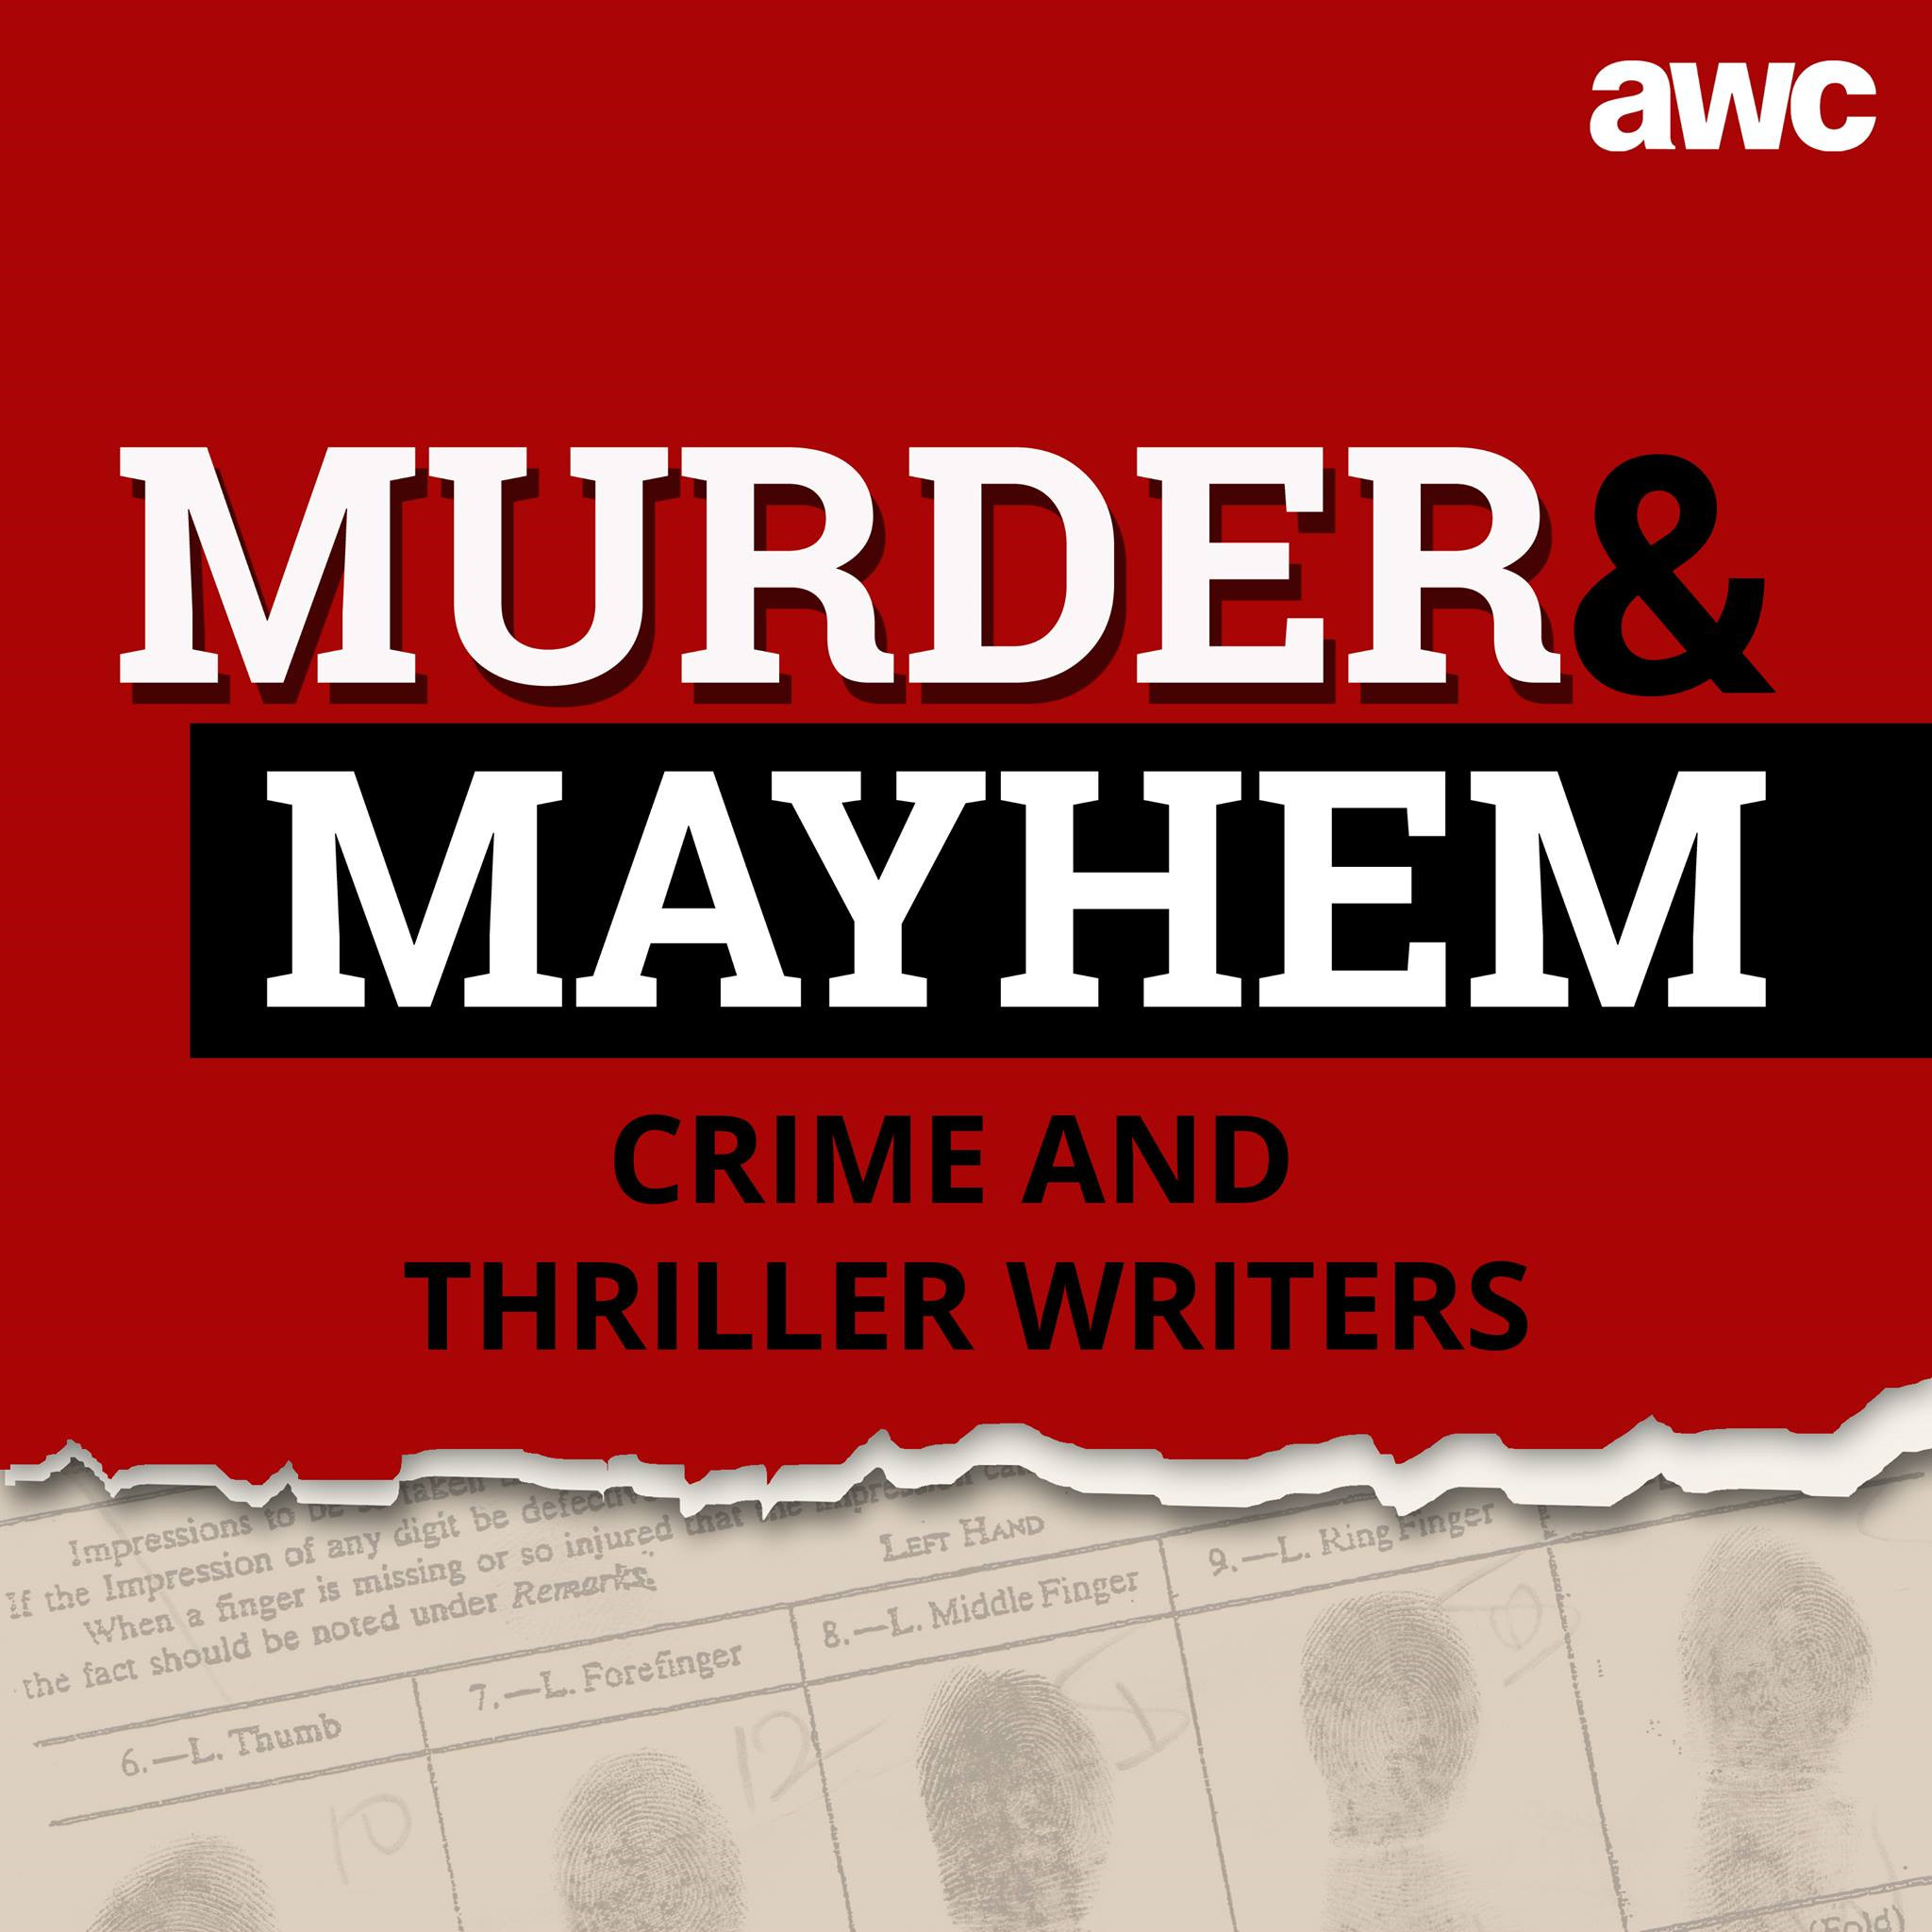 MURDER MAYHEM 26: Michael MacConnell is an author who is renowned for his thriller novels Splinter and Maelstrom.